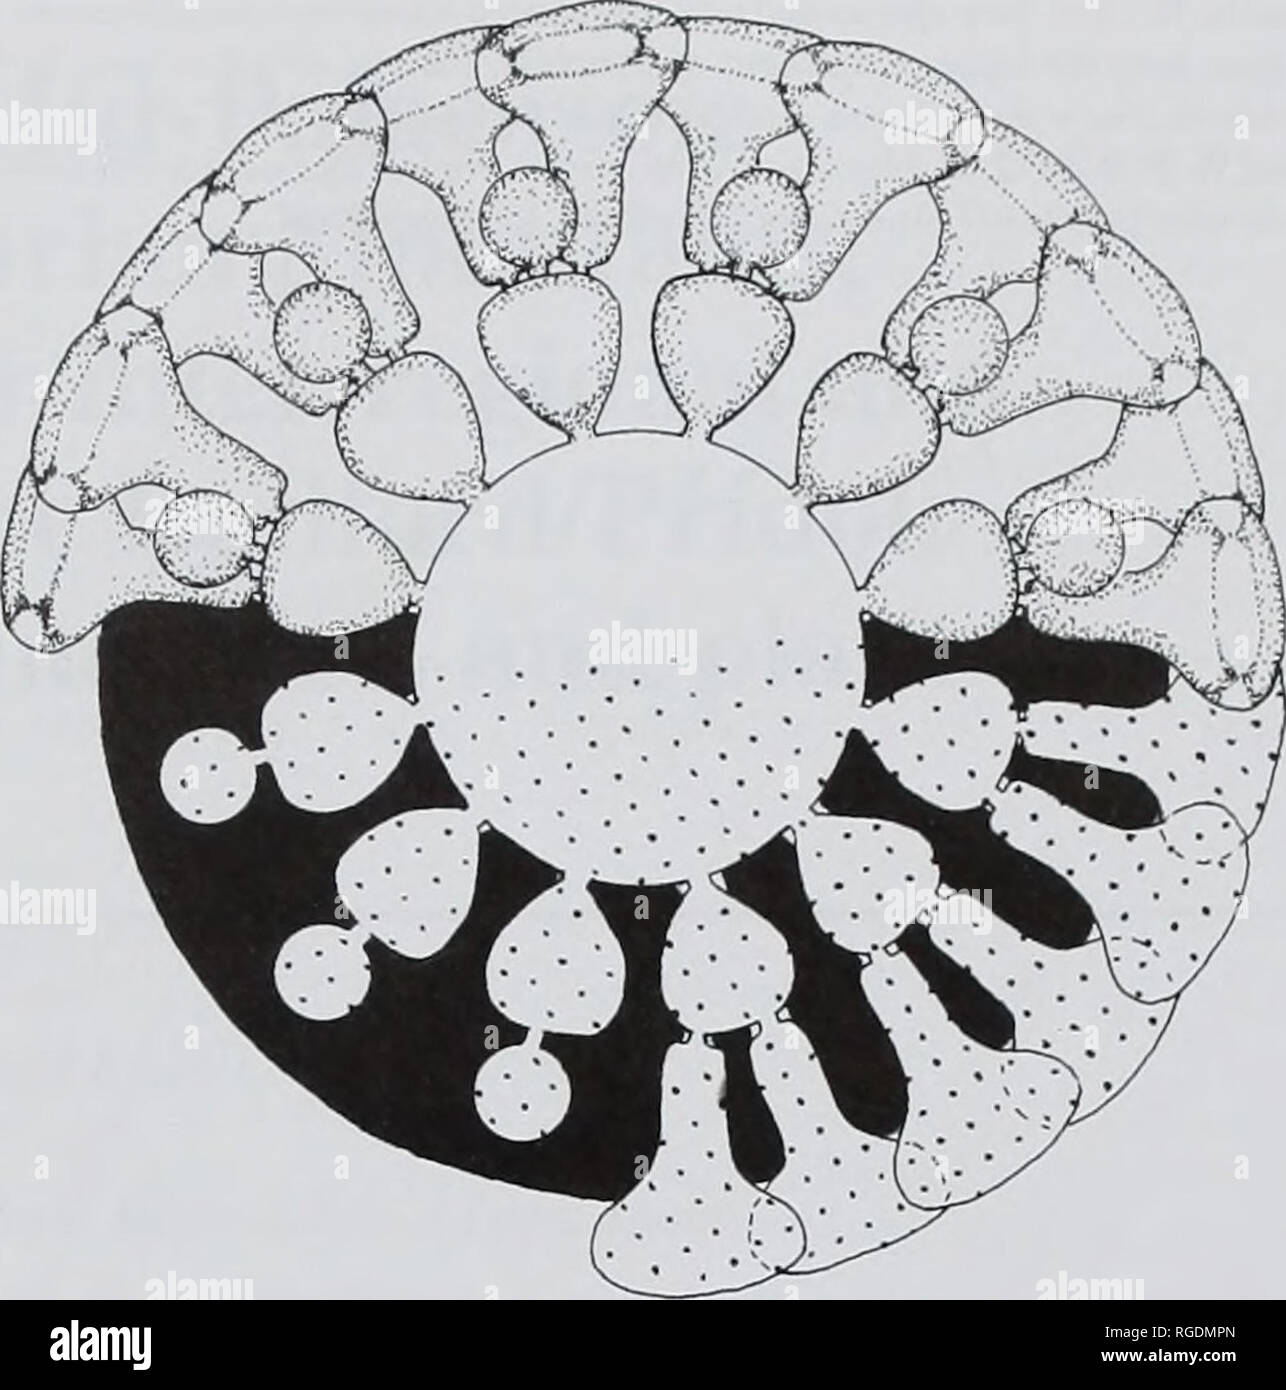 . Bulletin of the Natural Histort Museum. Geology series. SYSTEMATIC AFFINITY OF ACROPORELLA ASSURBANIPALI 113 the variability oftlie species and some qualitative characters such as the shape of thallus, laterals and reproductive organs would have required more abundant material. The thallus is apparently cylindrical and simple. Primary laterals are arranged in moderately close whorls. Their position between whorls, alternated or in continuity, is not evident. However they are phloiophorous and rather strong, almost perpendicular to the stem axis. The transverse section of the primary pores is Stock Photo